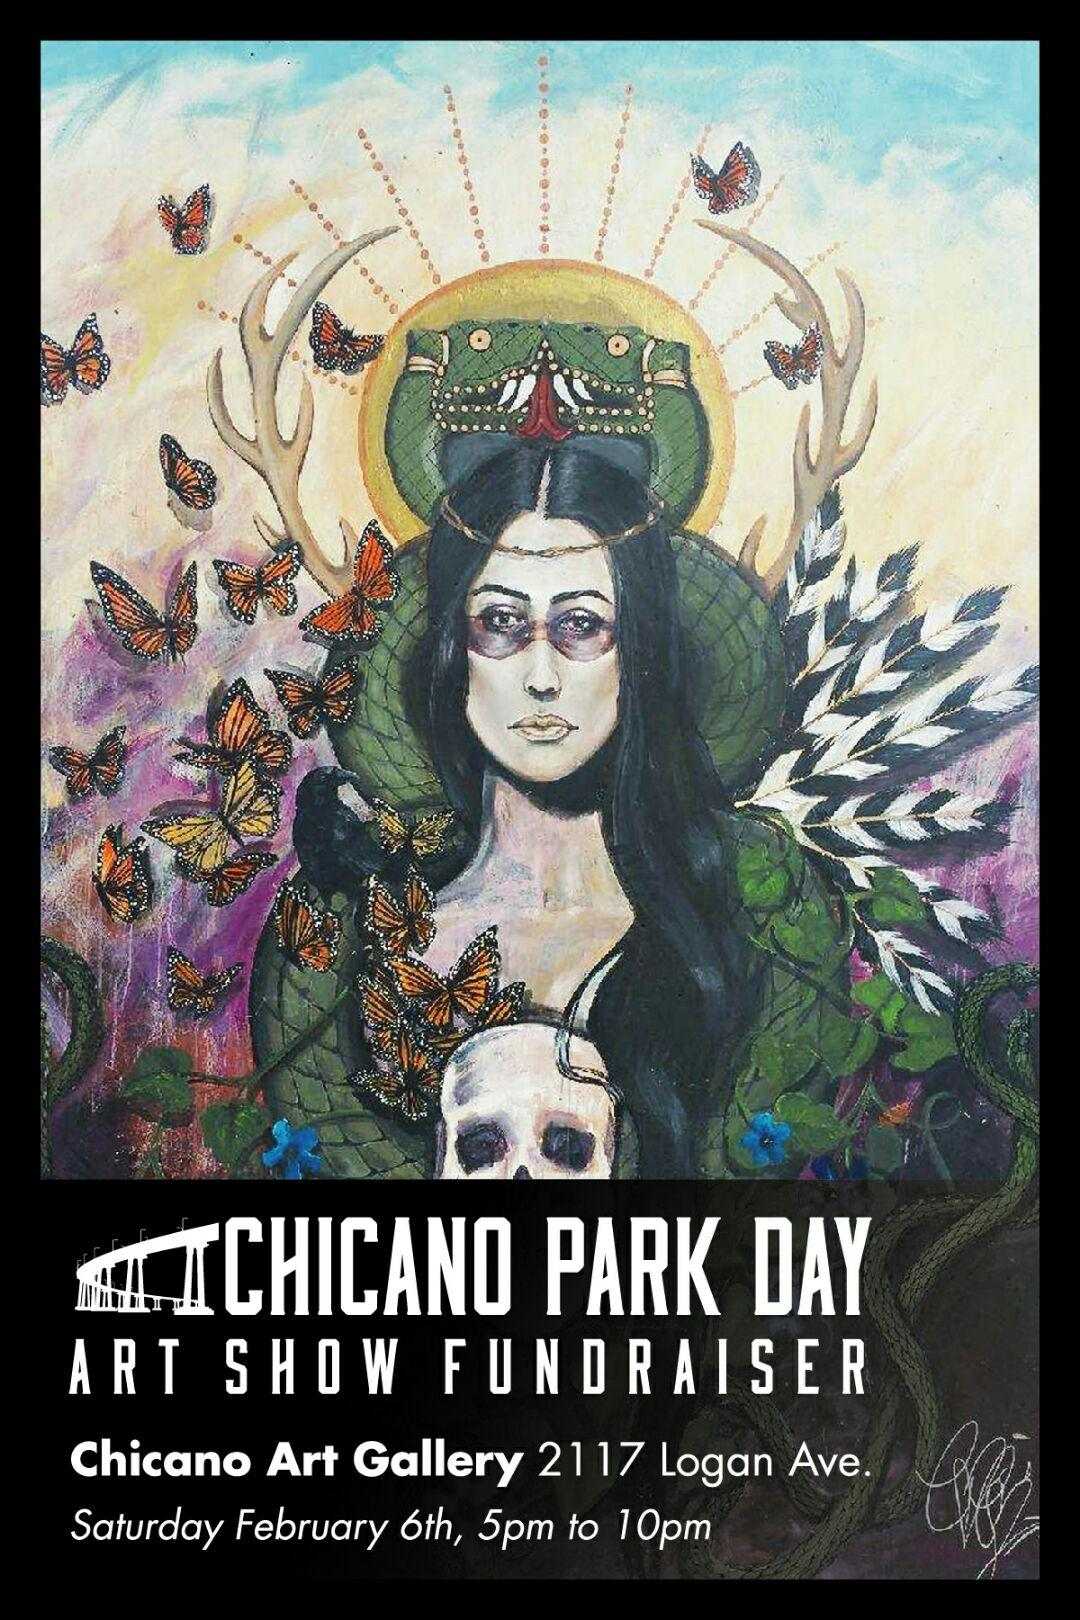 Chicano Park Day Fundraiser Flyer